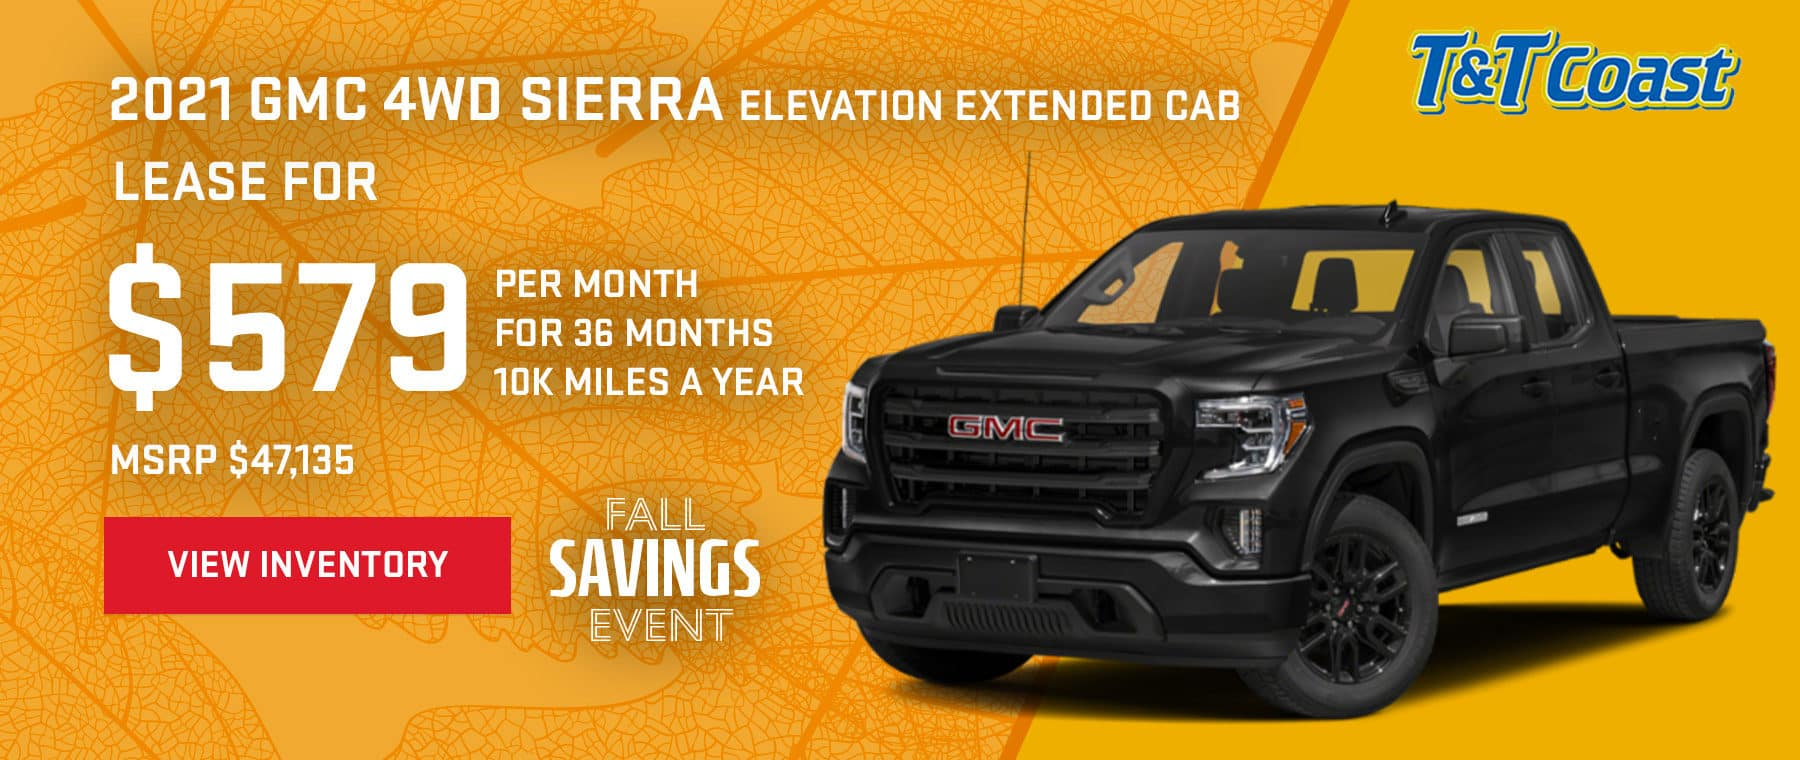 2021 GMC 4WD SIERRA ELEVATION EXTENDED CAB MSRP $47,135 $579/MONTH LEASE! For 36 Months /10K Miles/Year